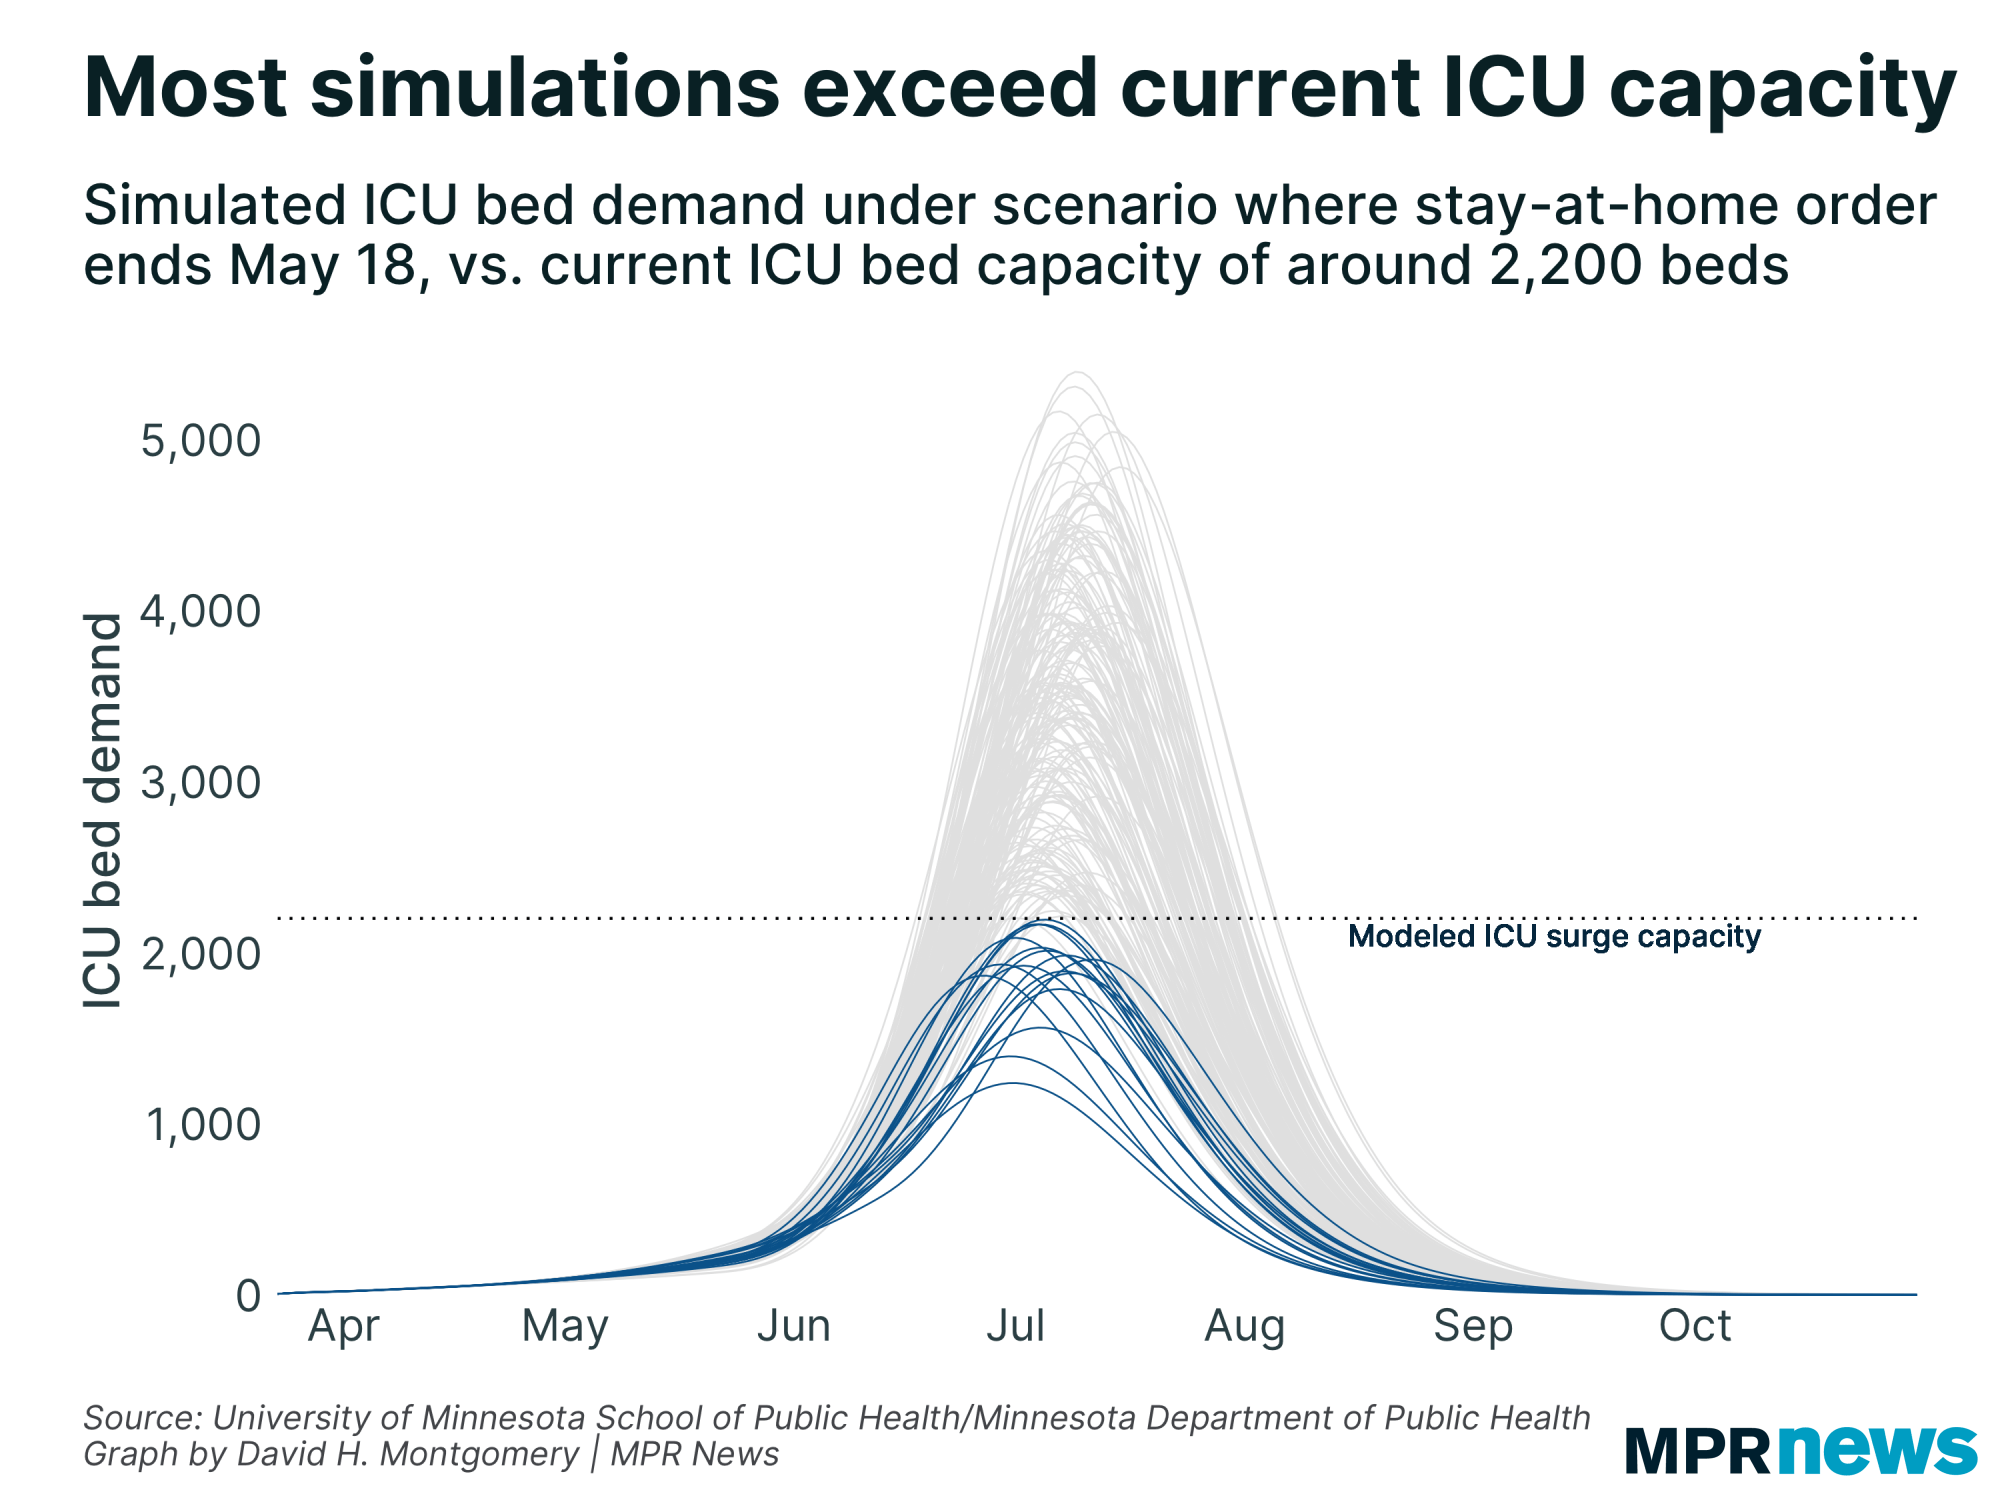 Minnesota's COVID-19 model predicts exceeding ICU capacity is likely.